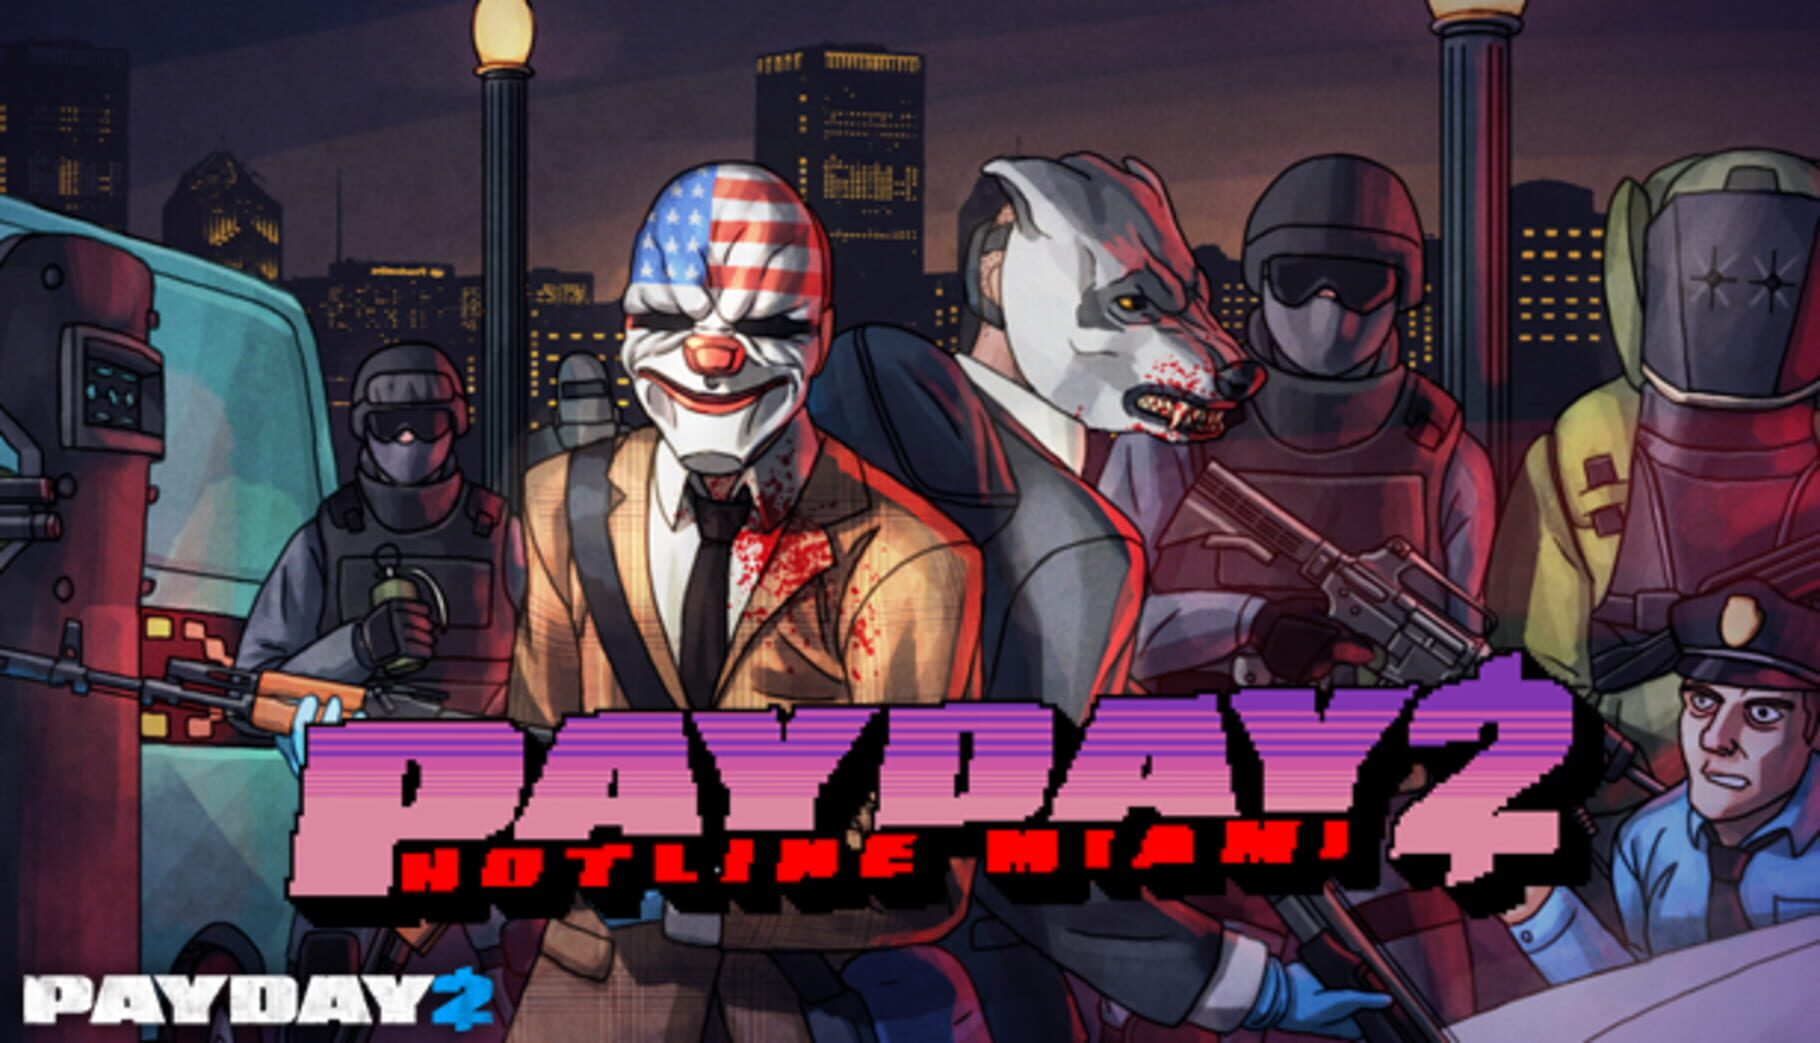 buy PAYDAY 2: Hotline Miami cd key for all platform